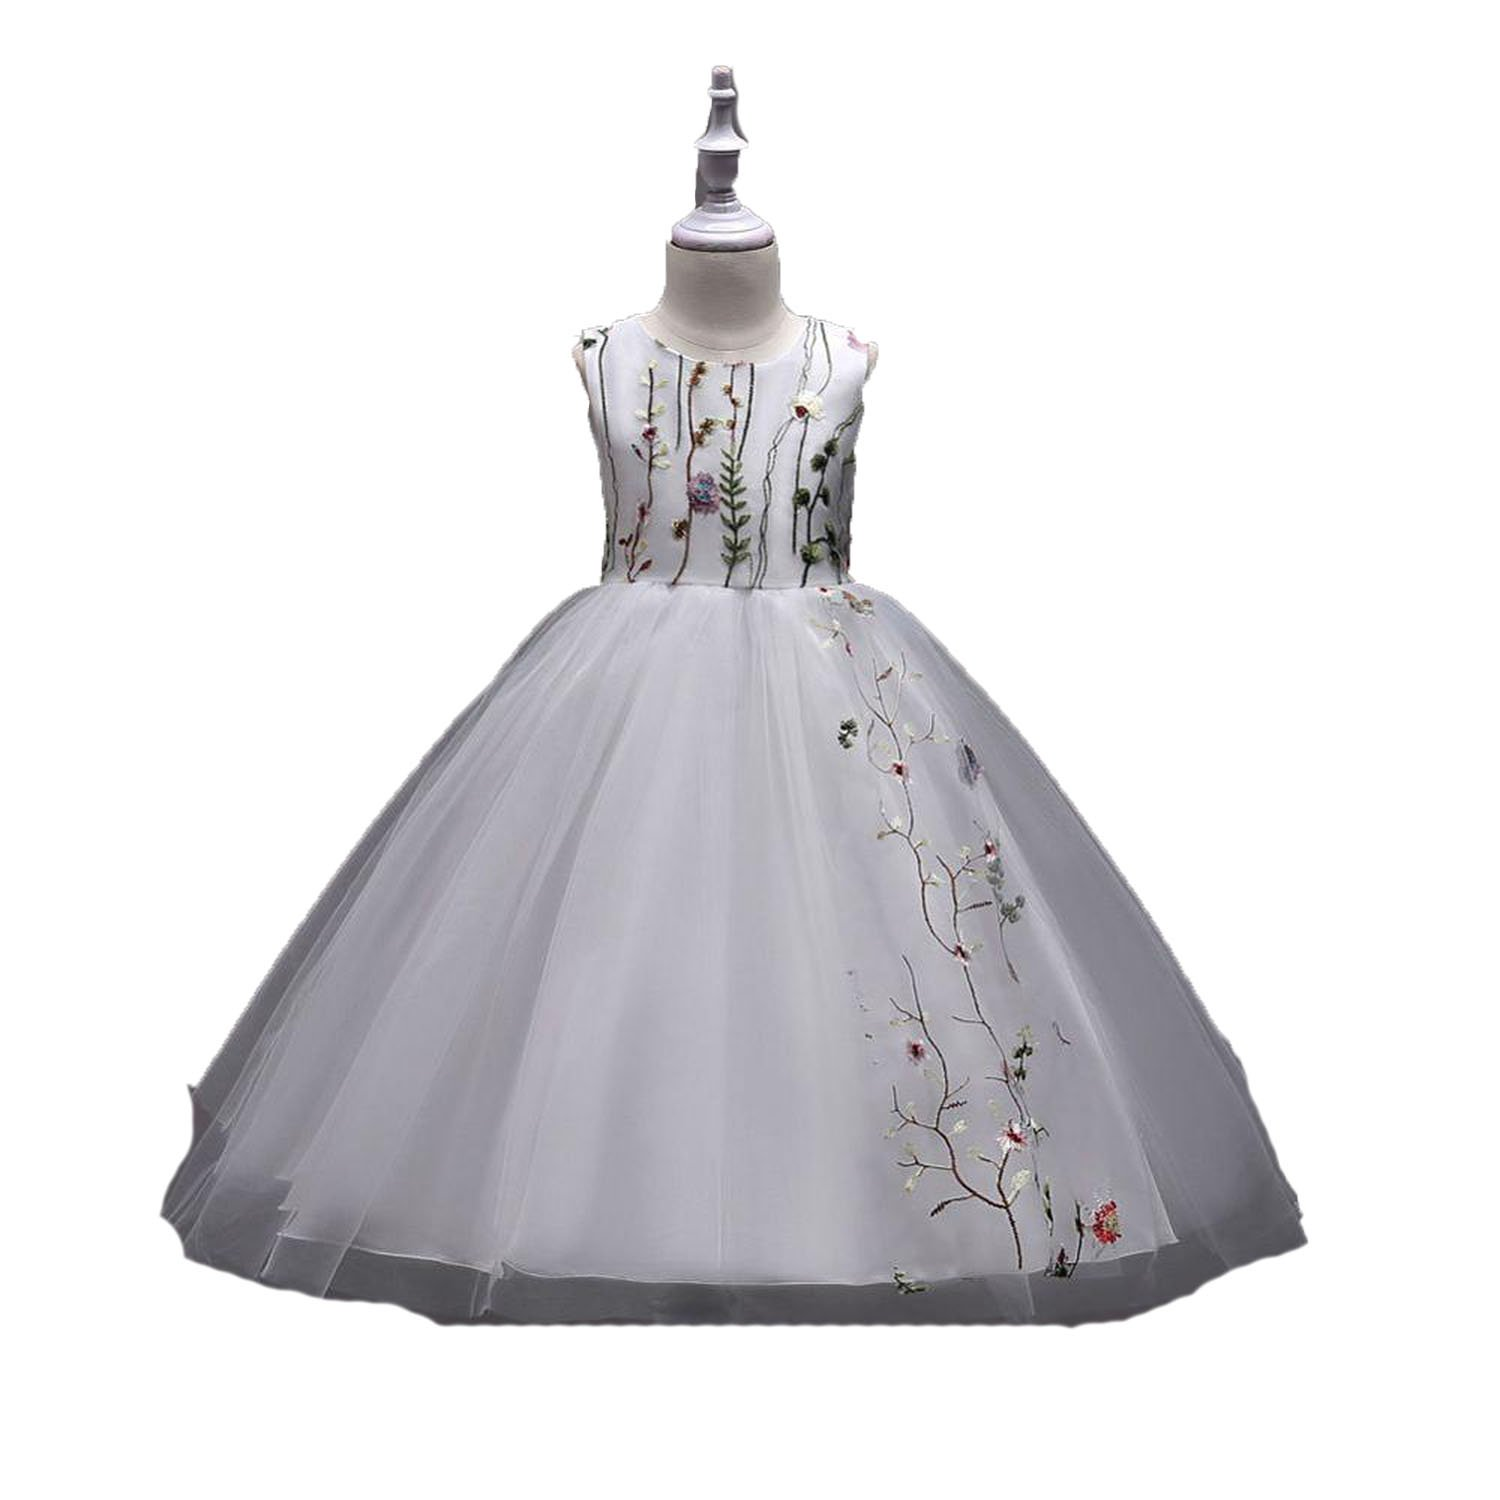 Toping Fine girl dress Knee Length Princess Puffy Embroidery Flower Girl Girls Party Gown Pageant Dresses,White,Child-7 by Toping Fine girl dress (Image #1)